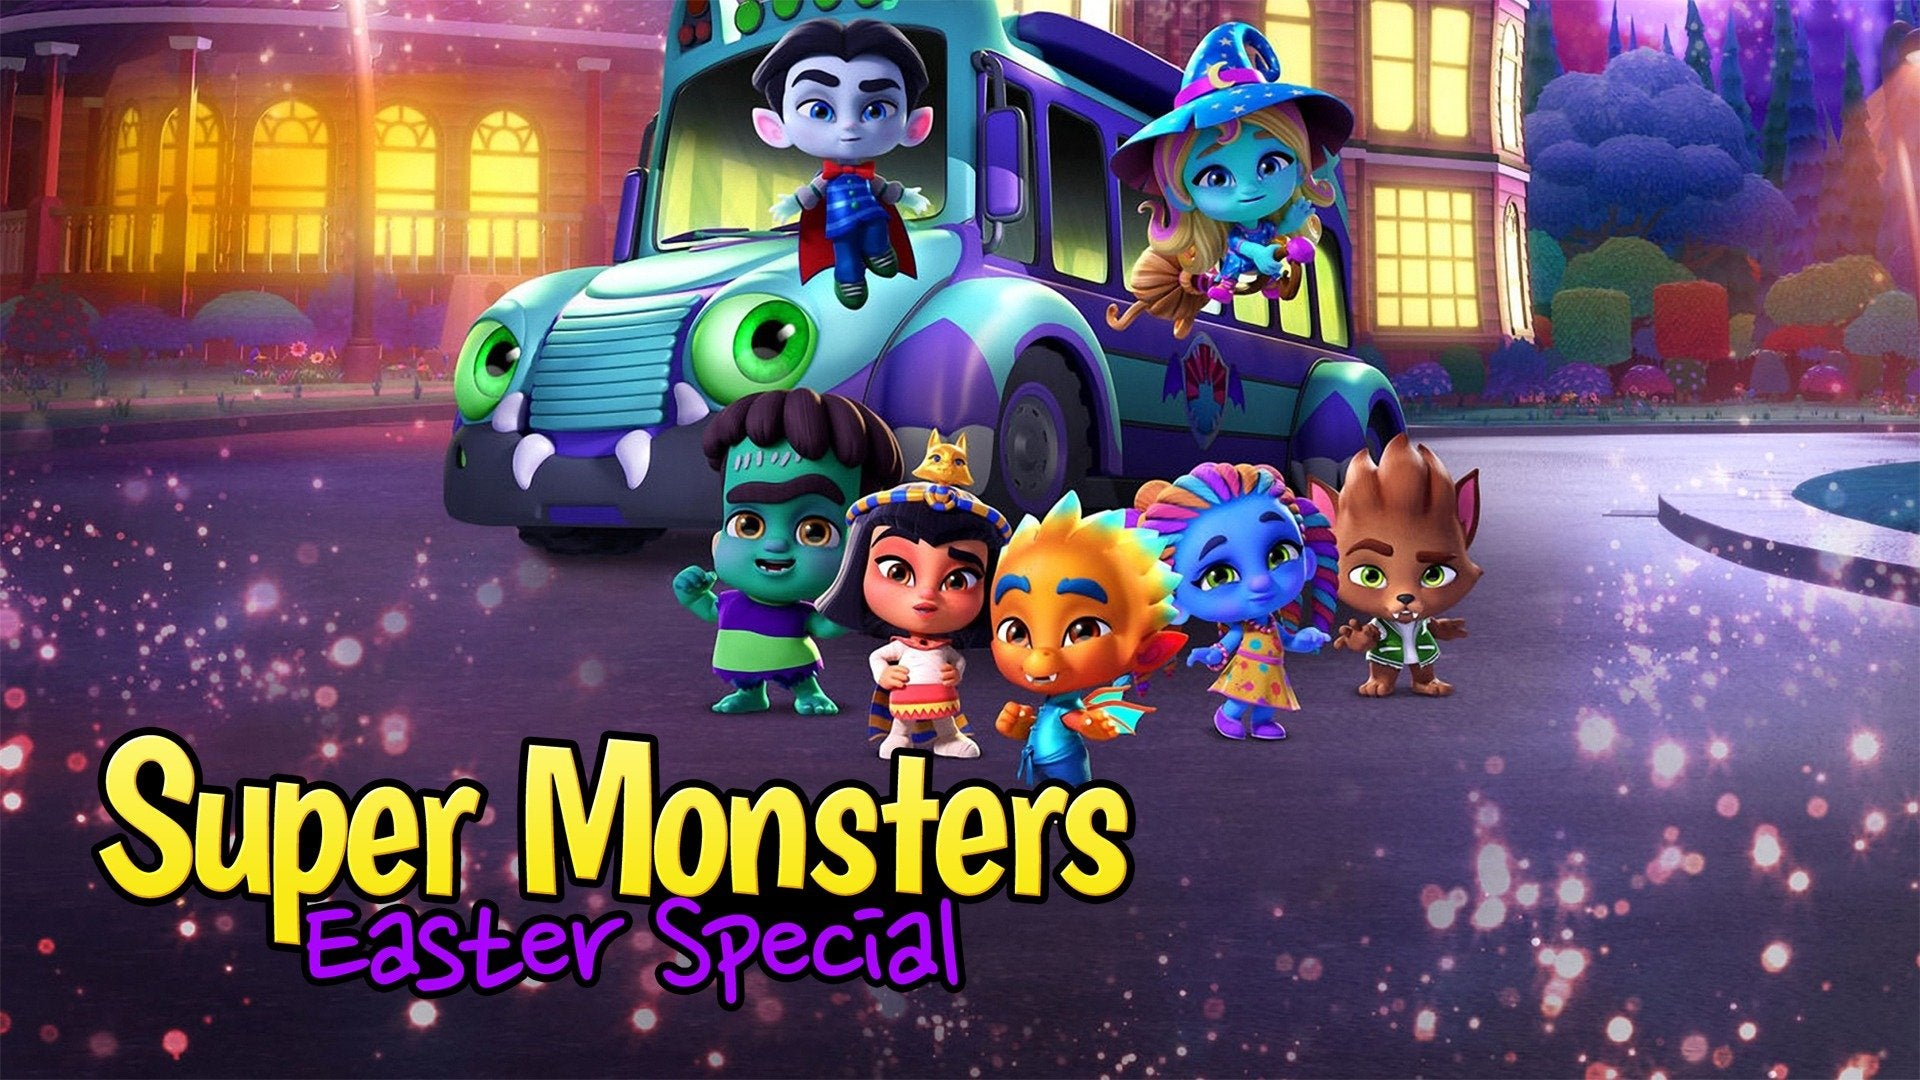 Super Monsters Easter Special 1920x1080